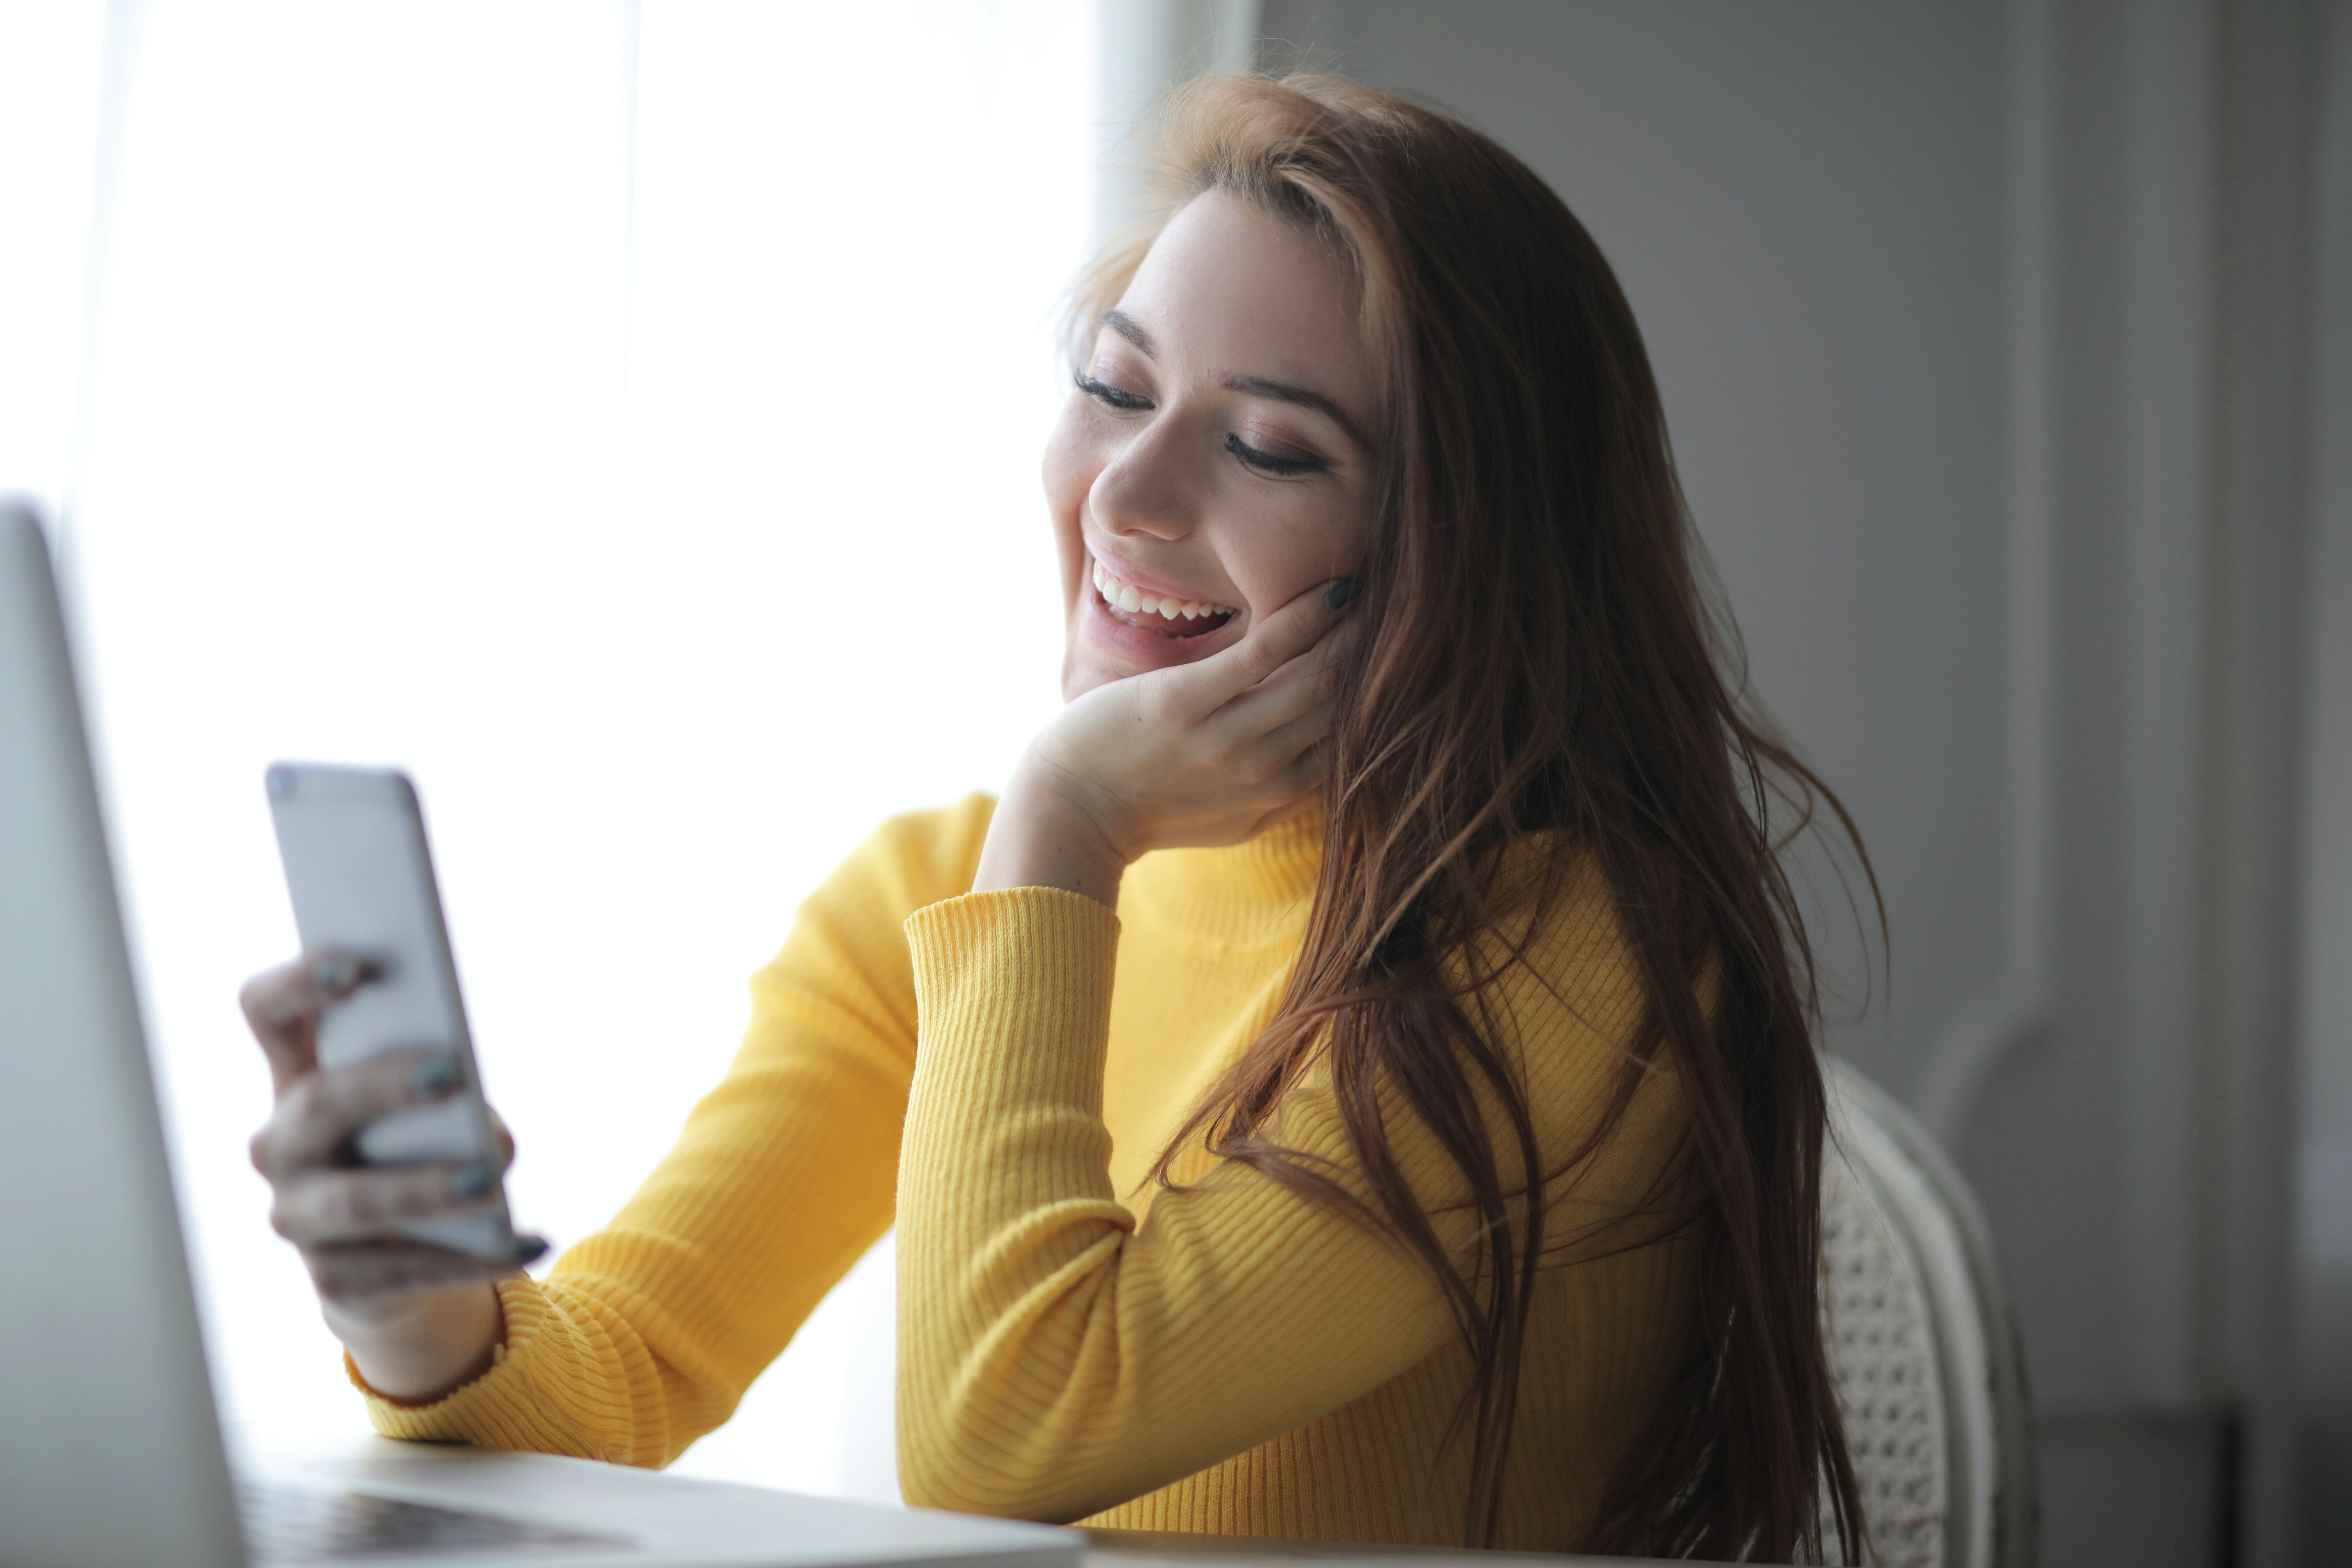 cheerful-young-female-student-using-smartphone-while-working-3884194